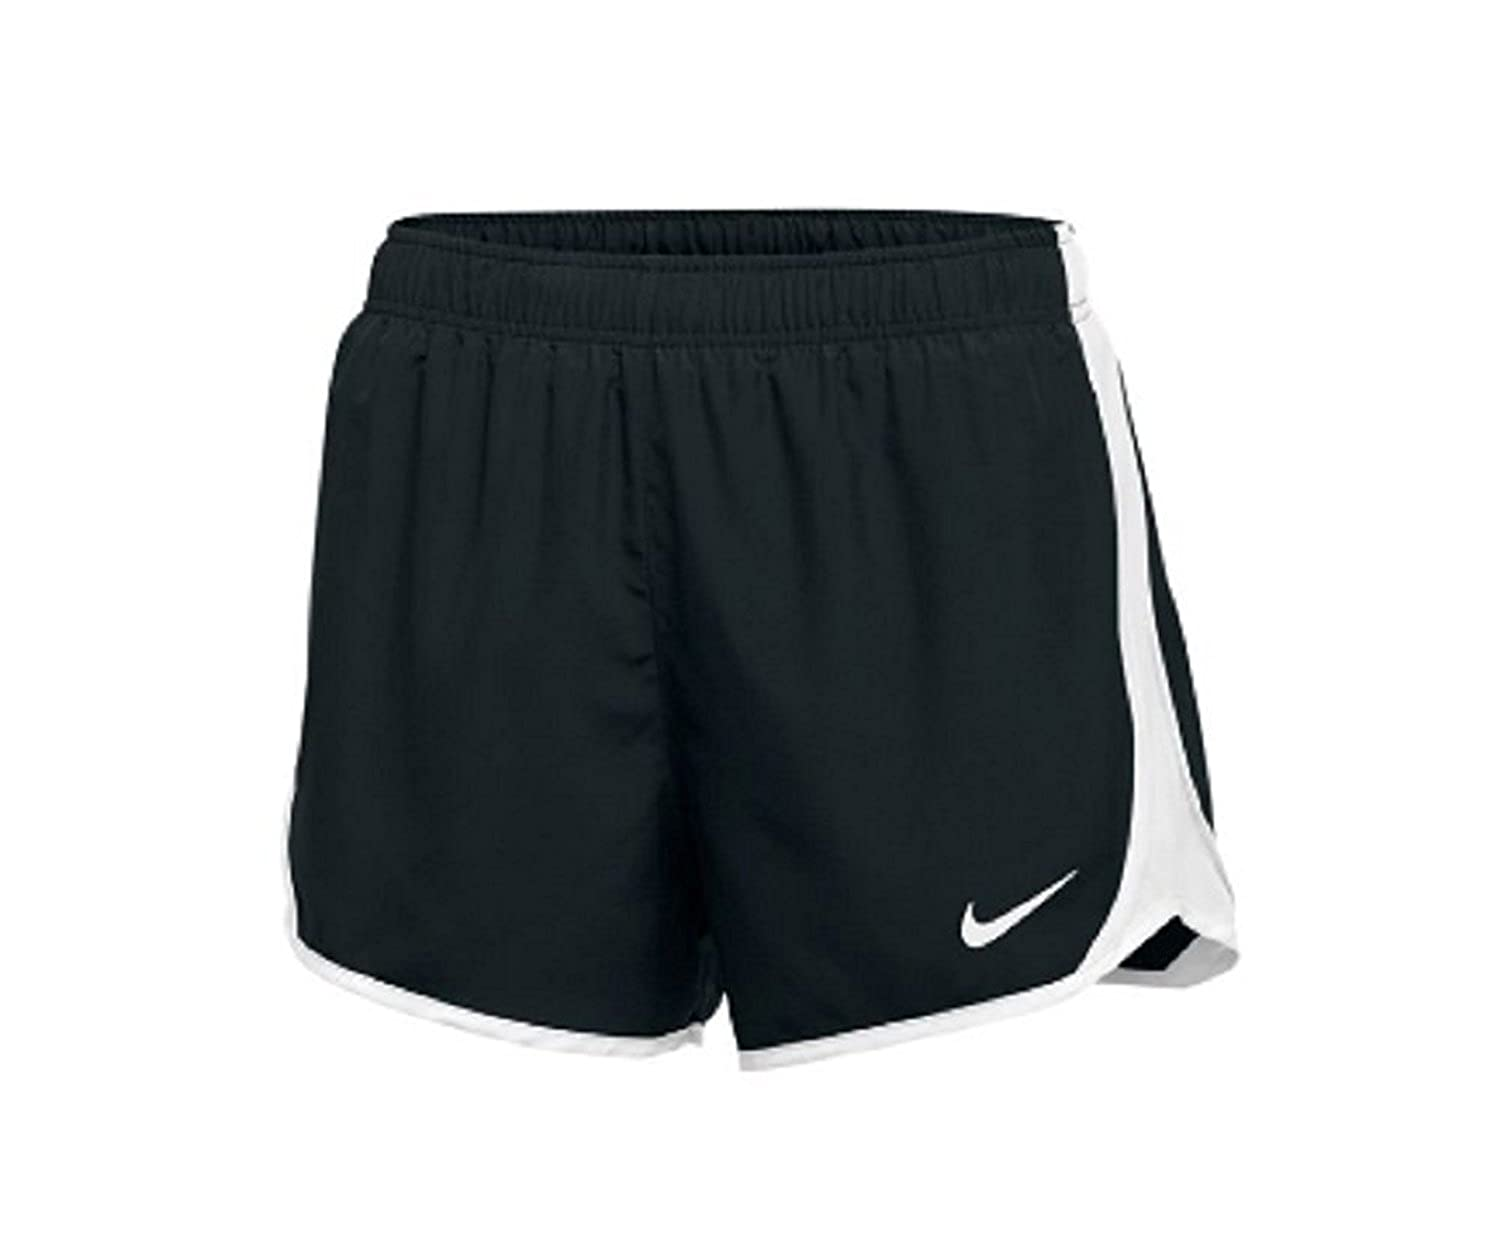 4153fba3a9b0 Nike Womens Dry Tempo Running Short (Small)Black at Amazon Women s Clothing  store